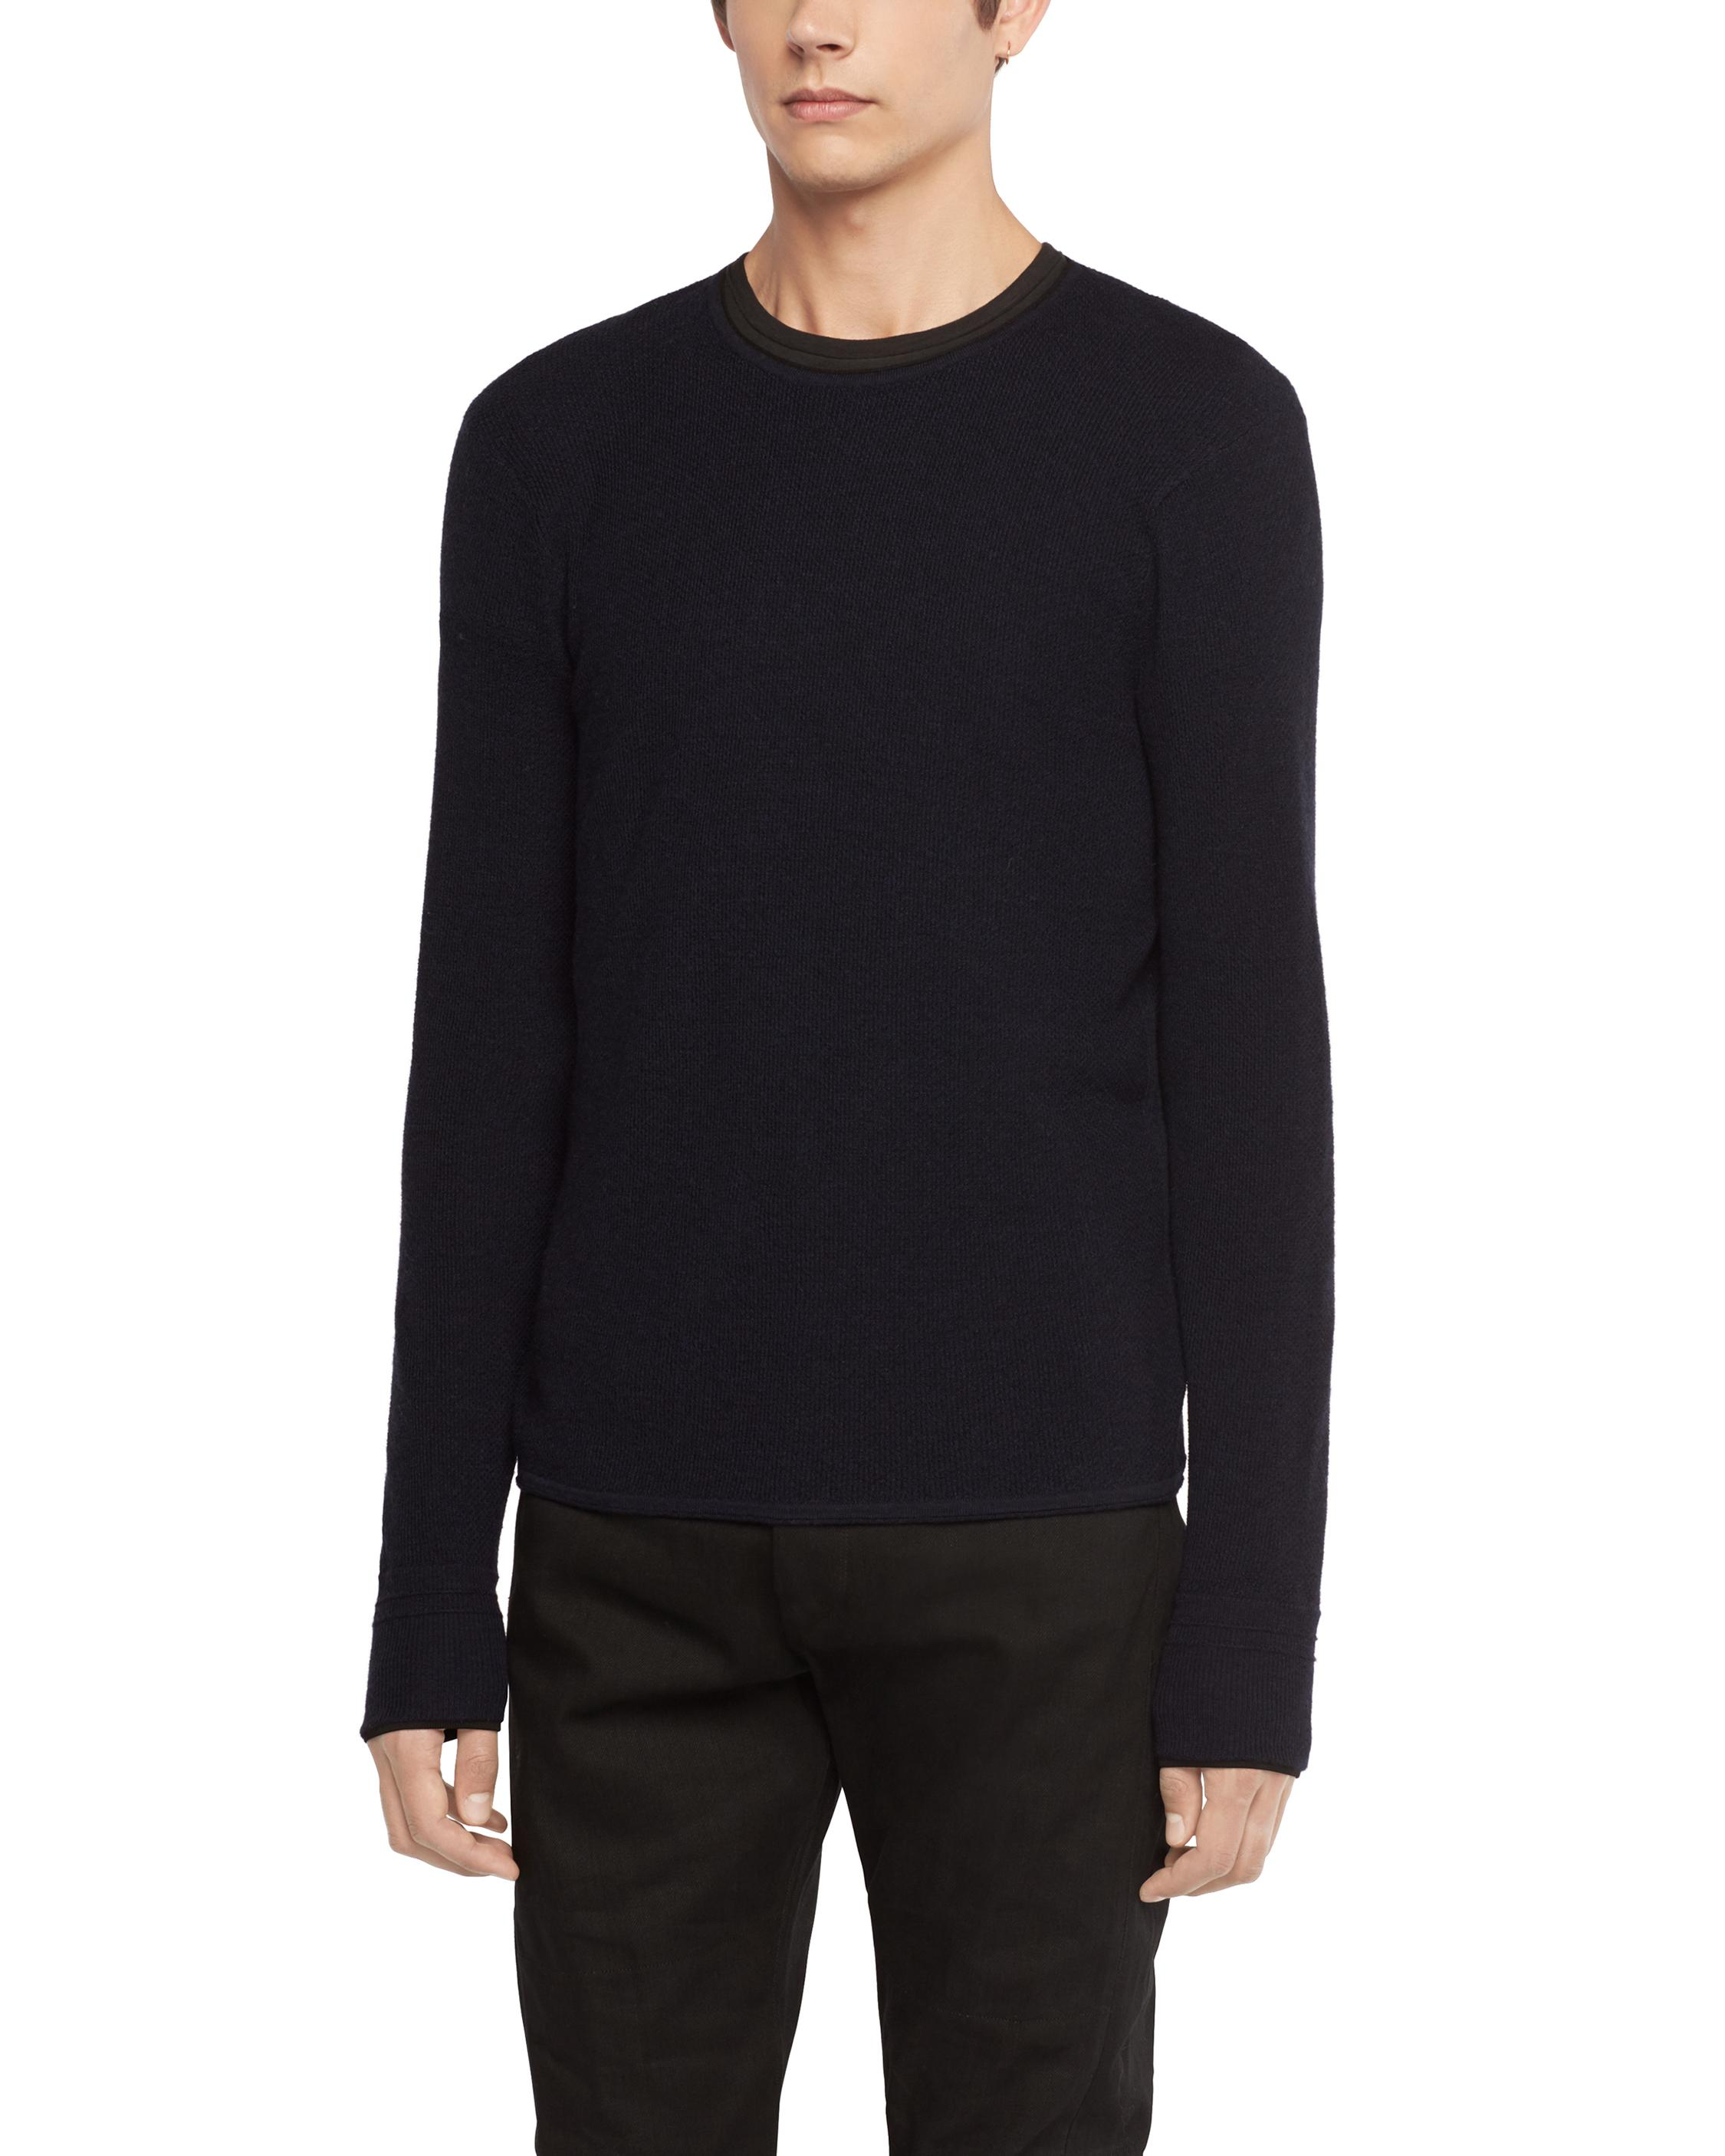 Giles Crew Men Sweaters Rag Bone